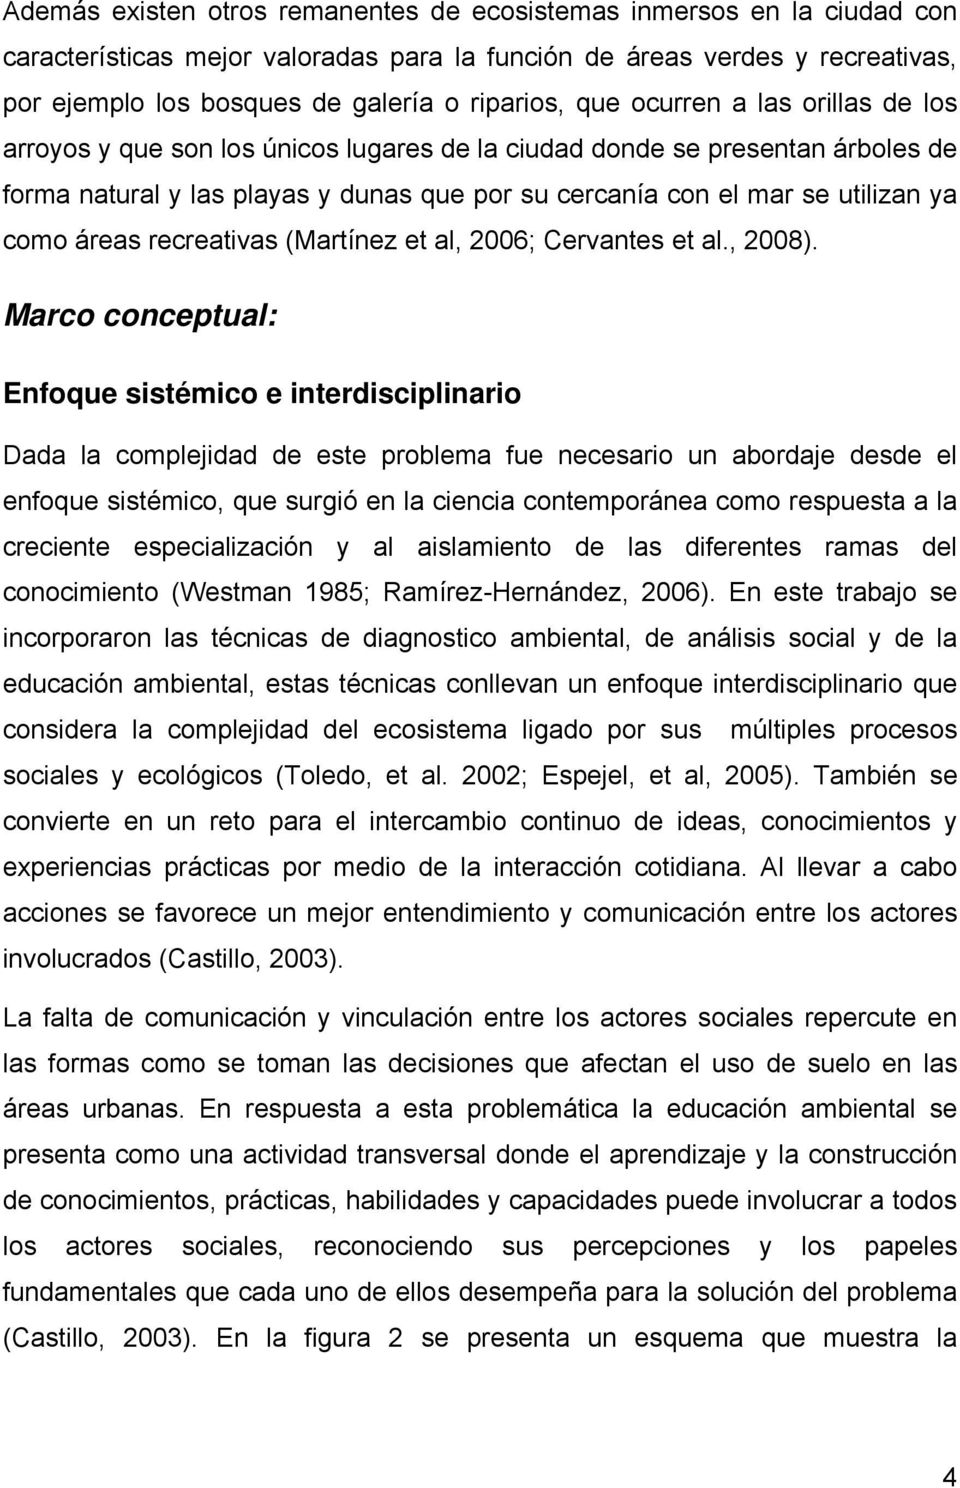 áreas recreativas (Martínez et al, 2006; Cervantes et al., 2008).